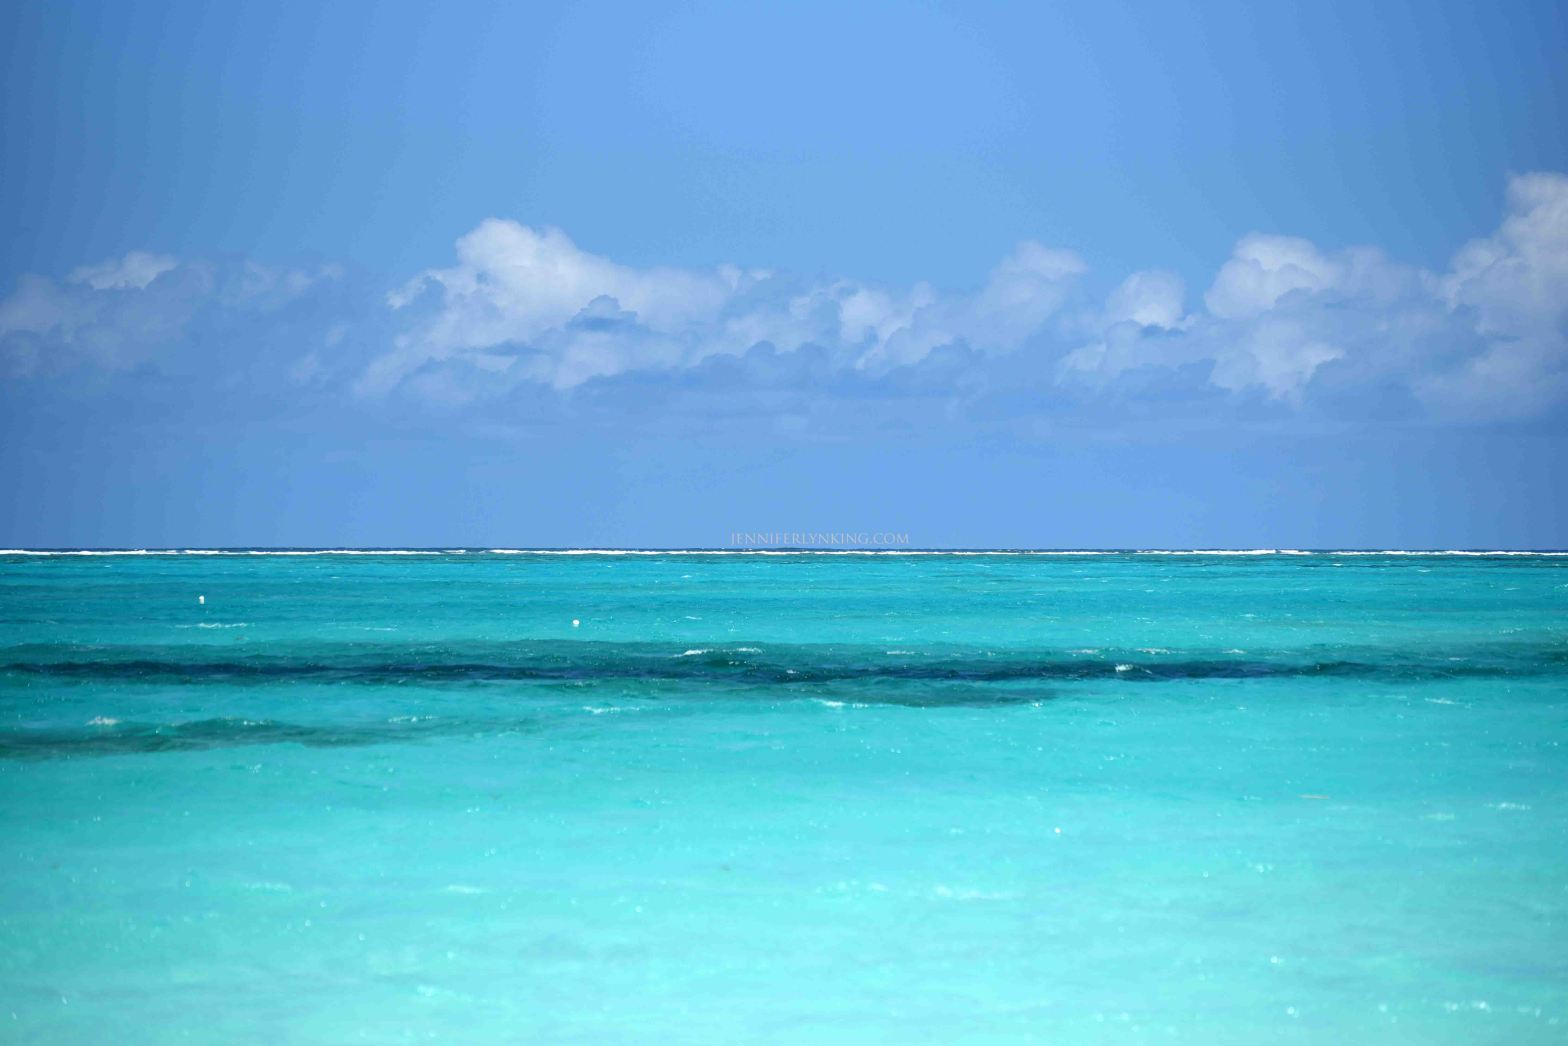 Turks and Caicos, the dream destination